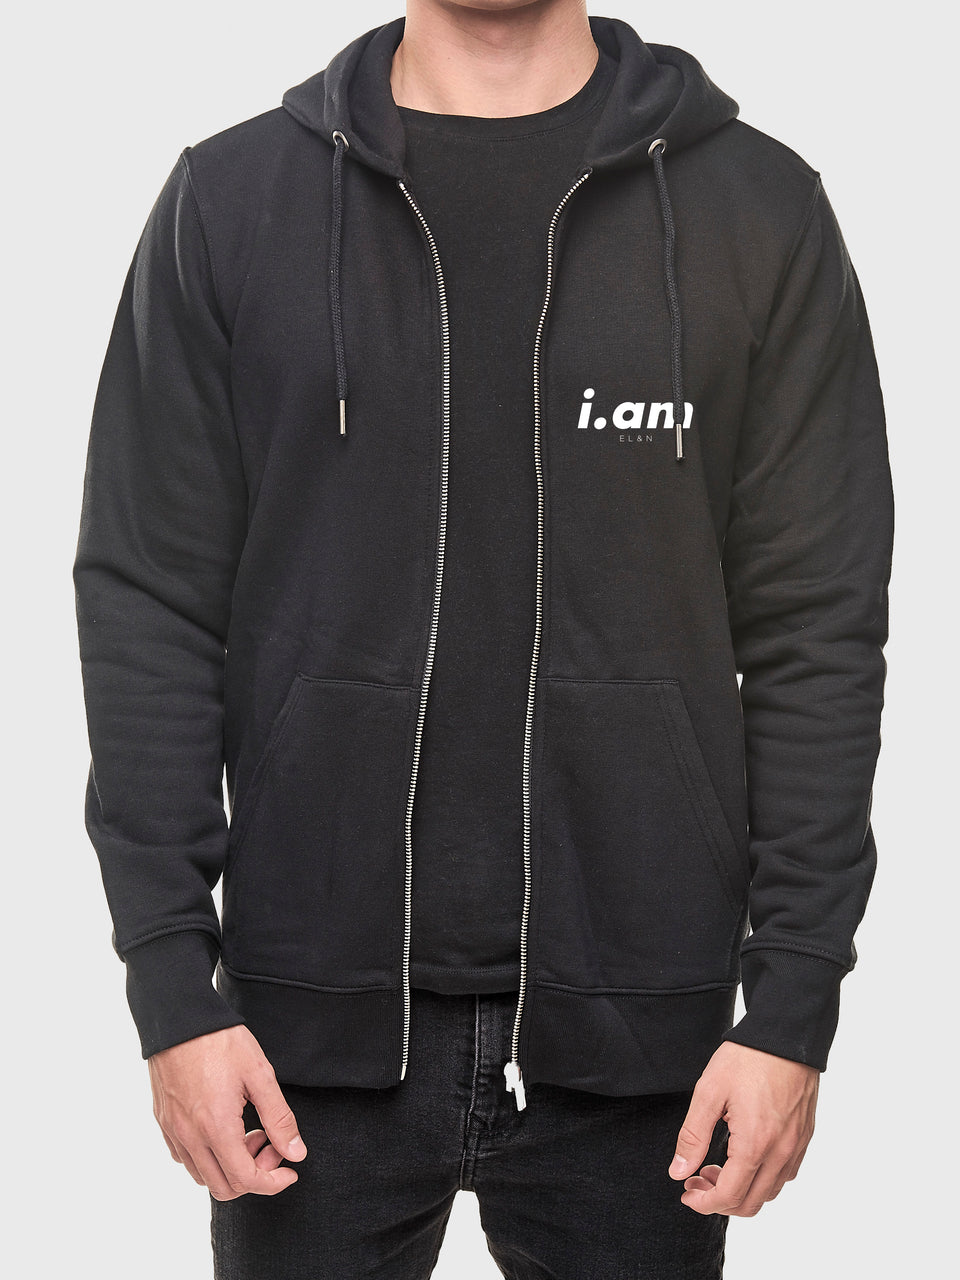 Made in London - Black - unisex zip up hoodie